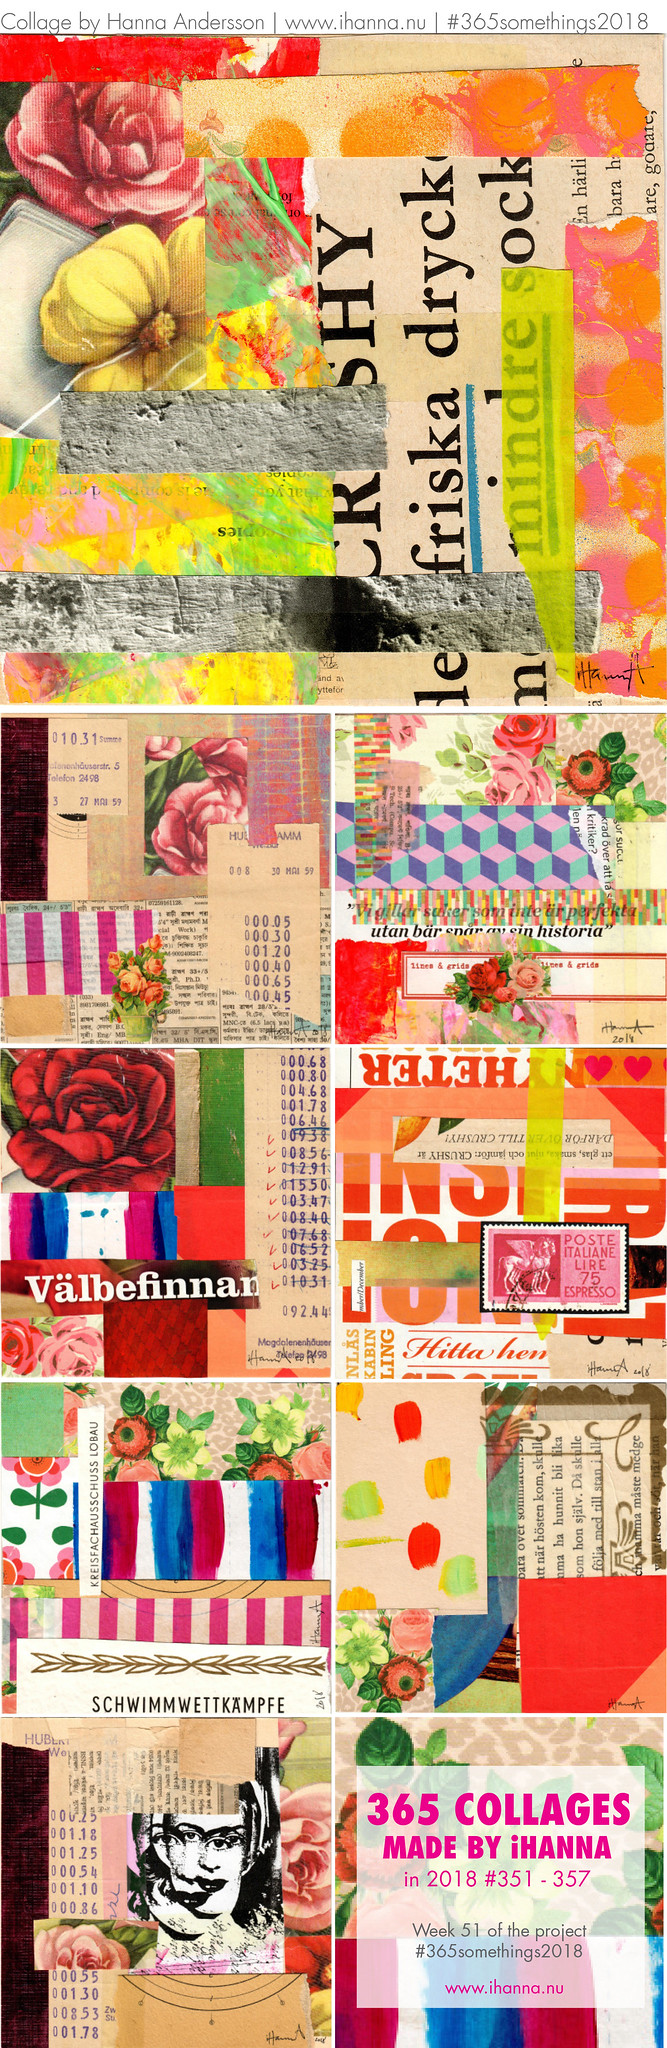 iHanna's 365 Collages 2018 Week 51 a.k.a. Hanna Andersson #365somethings2018 #art